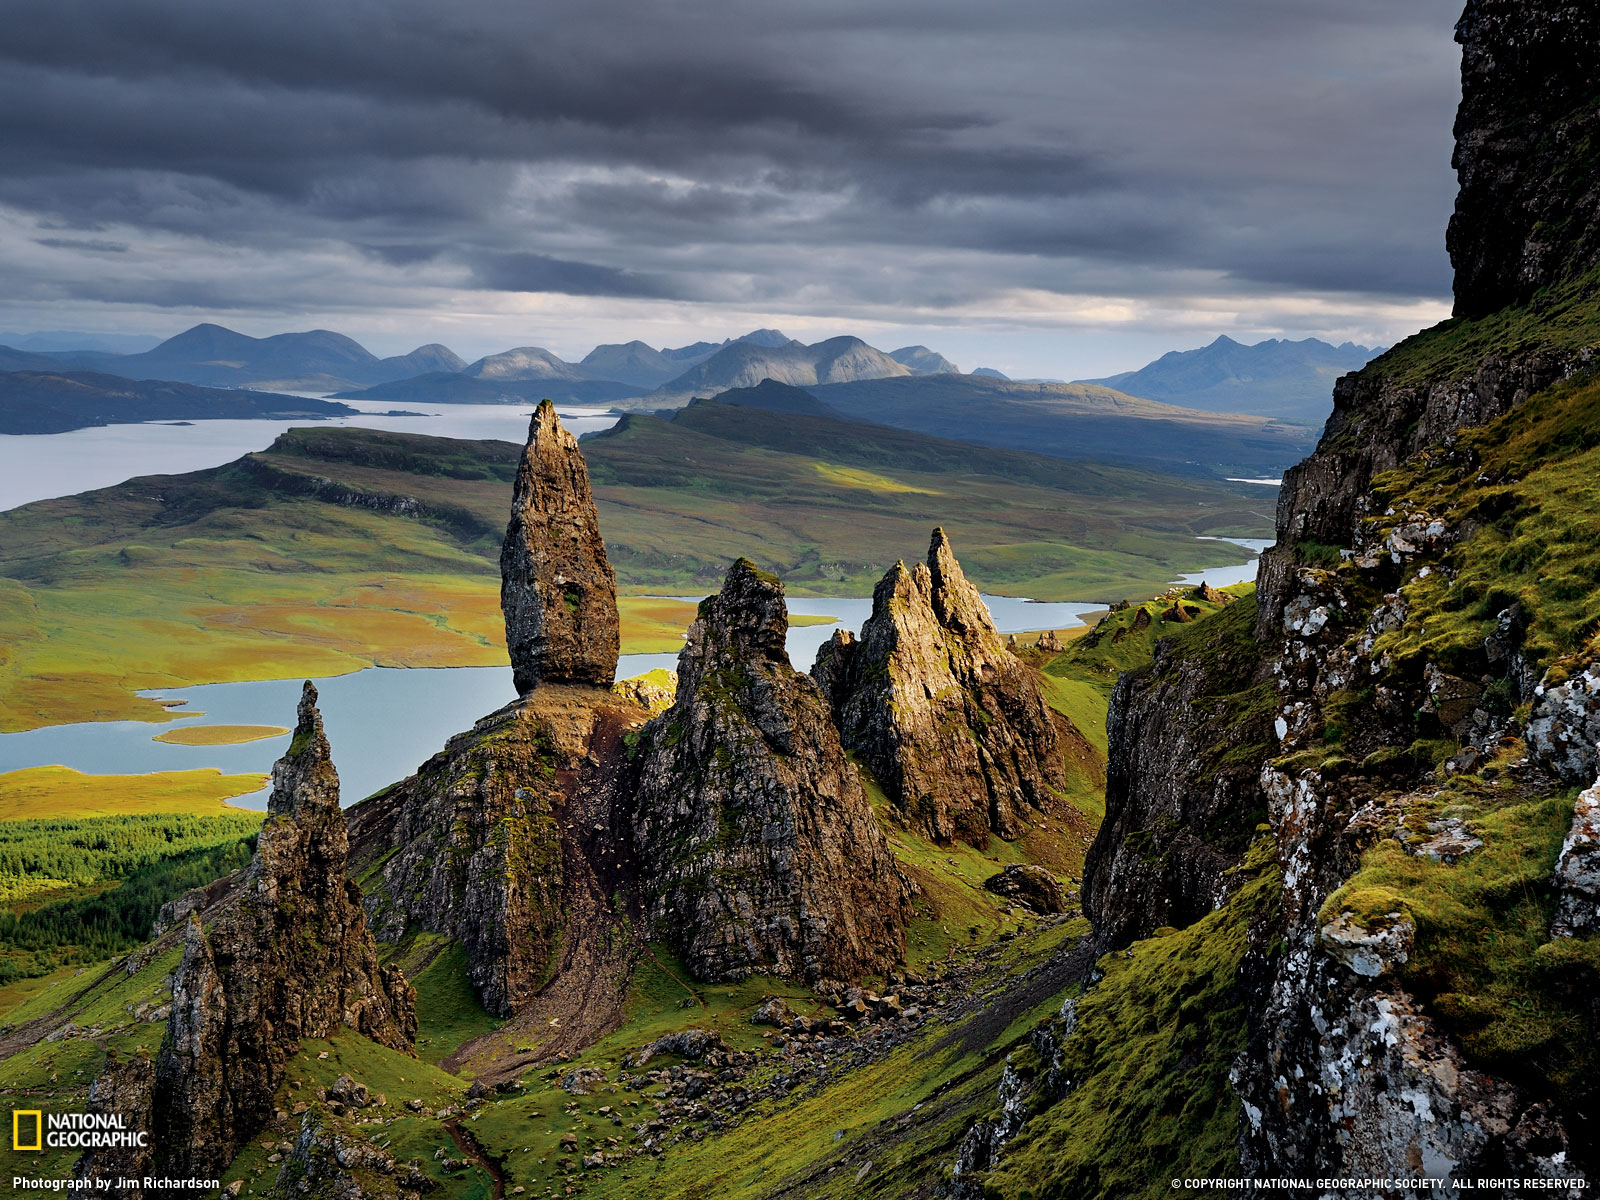 Beautiful Country Scotland Wallpapers Cute Girls Celebrity Wallpaper 1600x1200